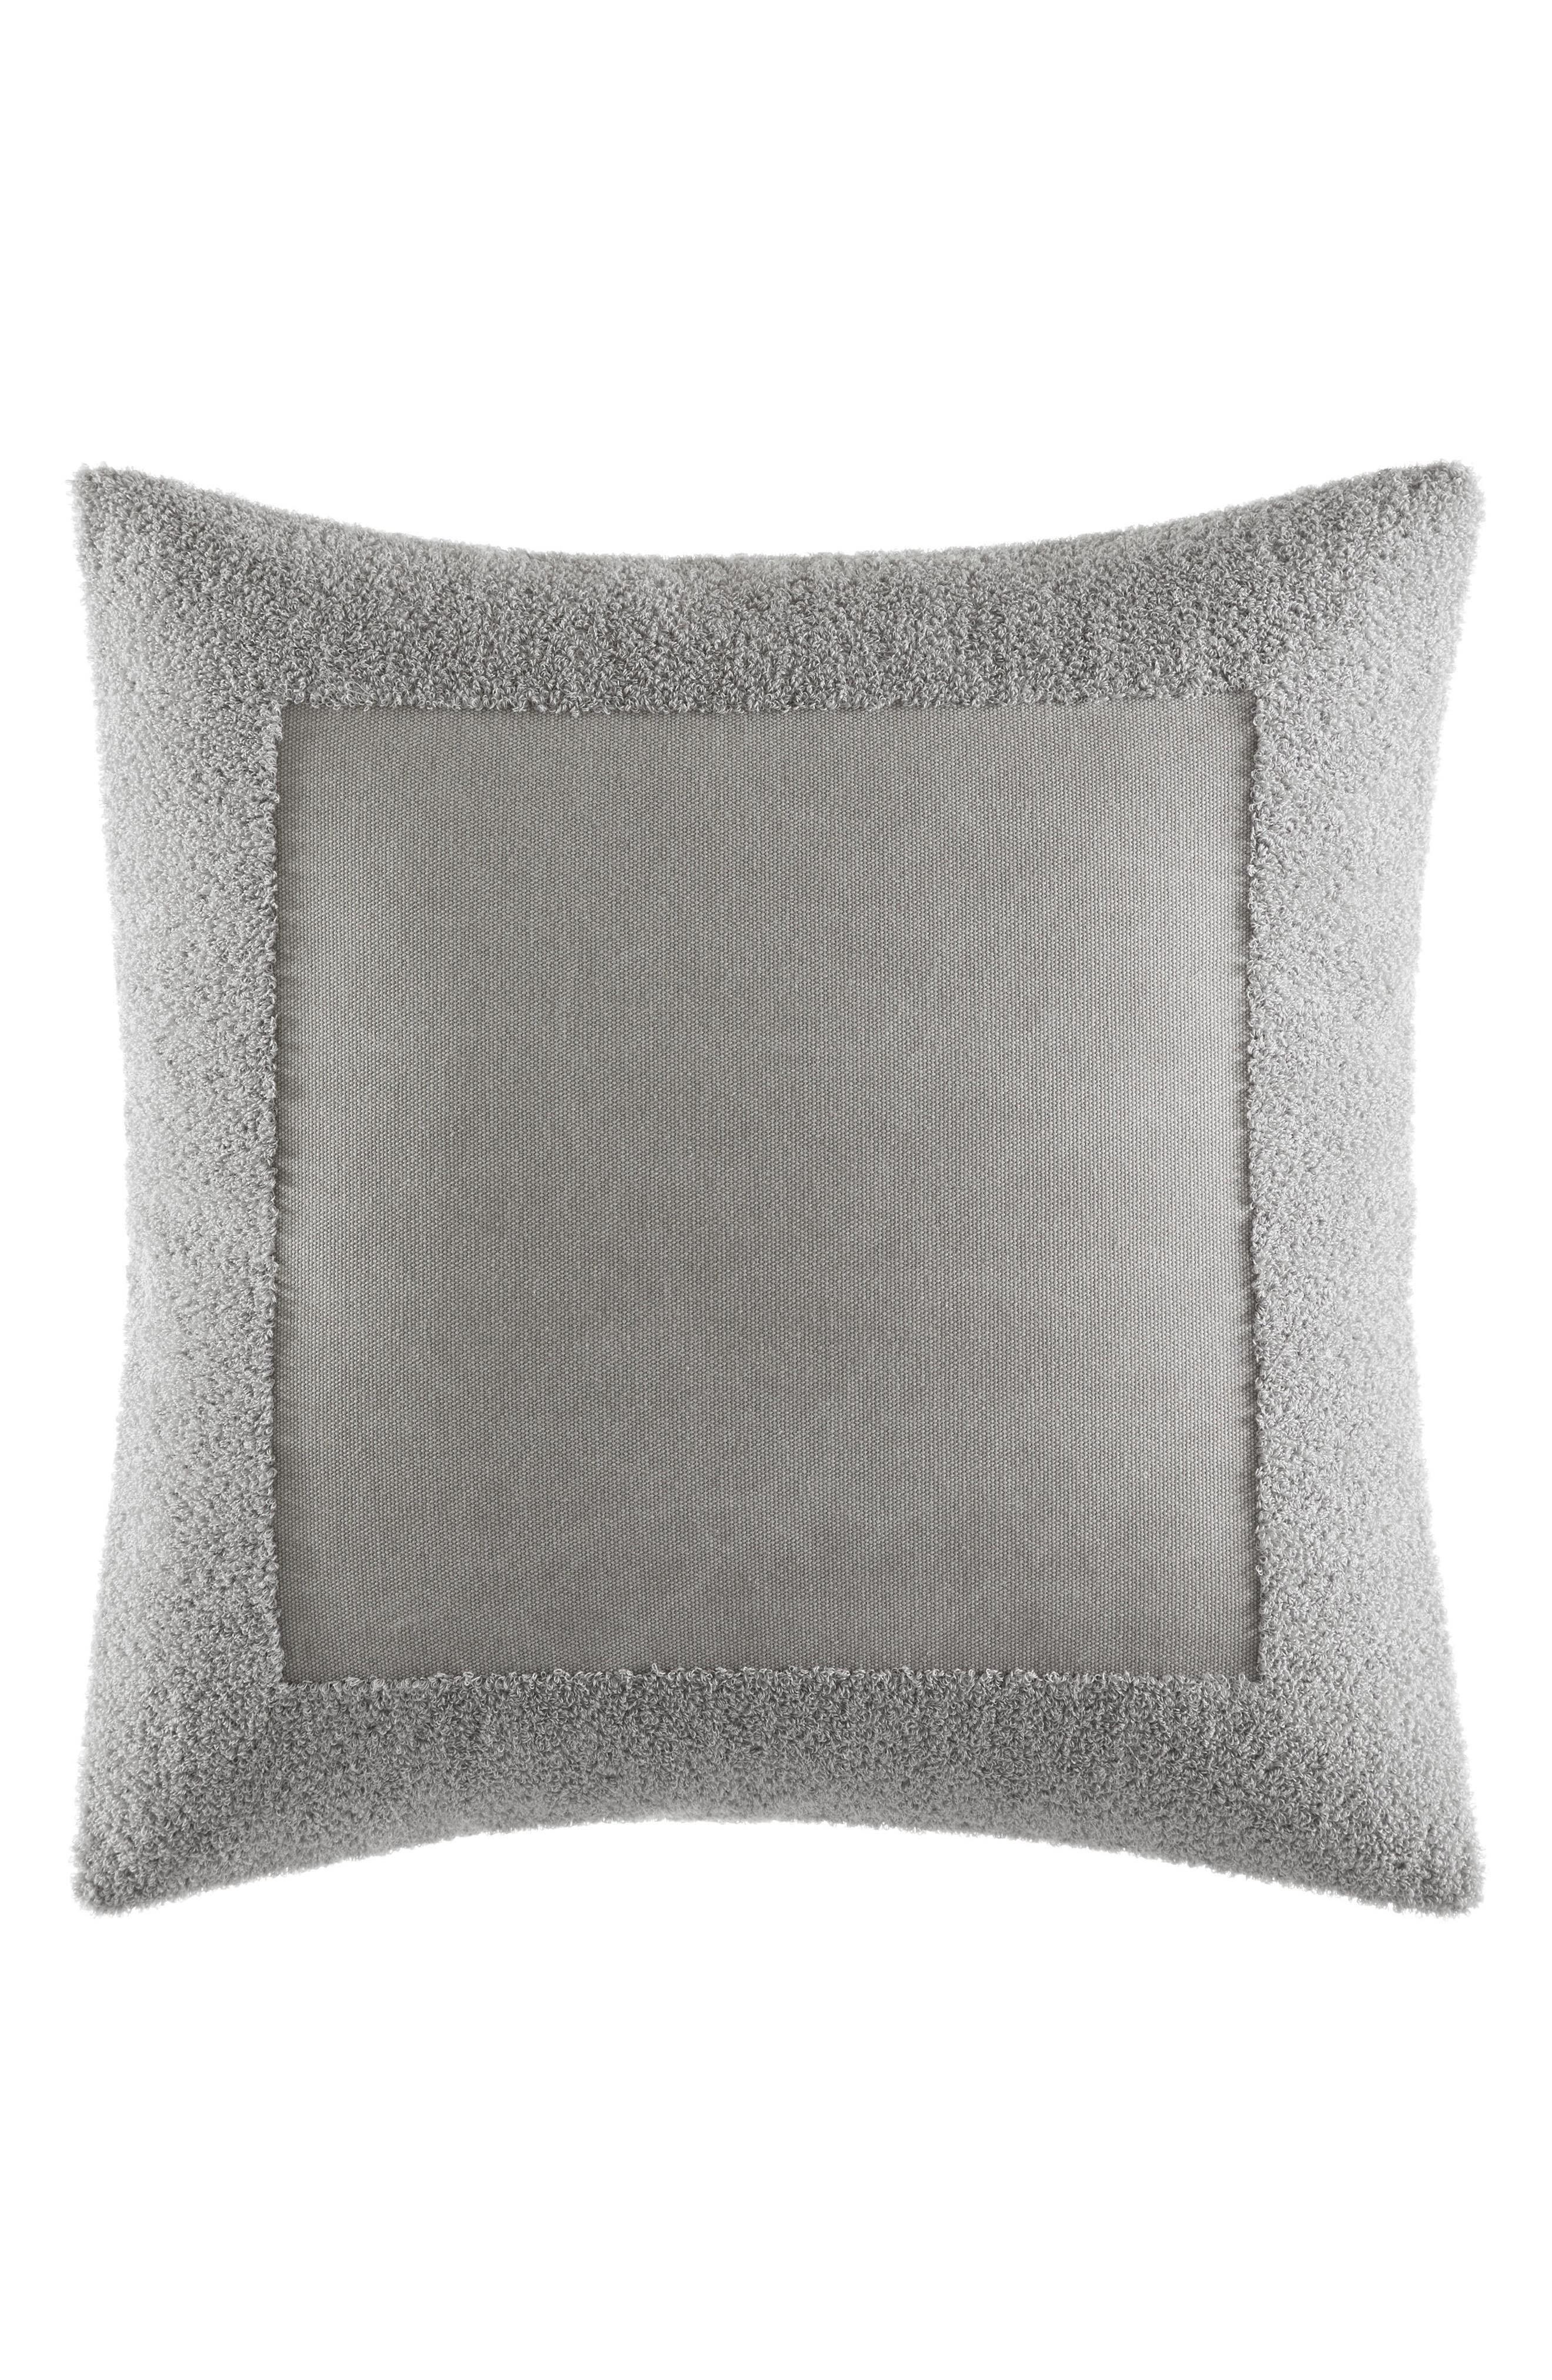 Transparent Leaves Accent Pillow,                         Main,                         color, Medium Gray